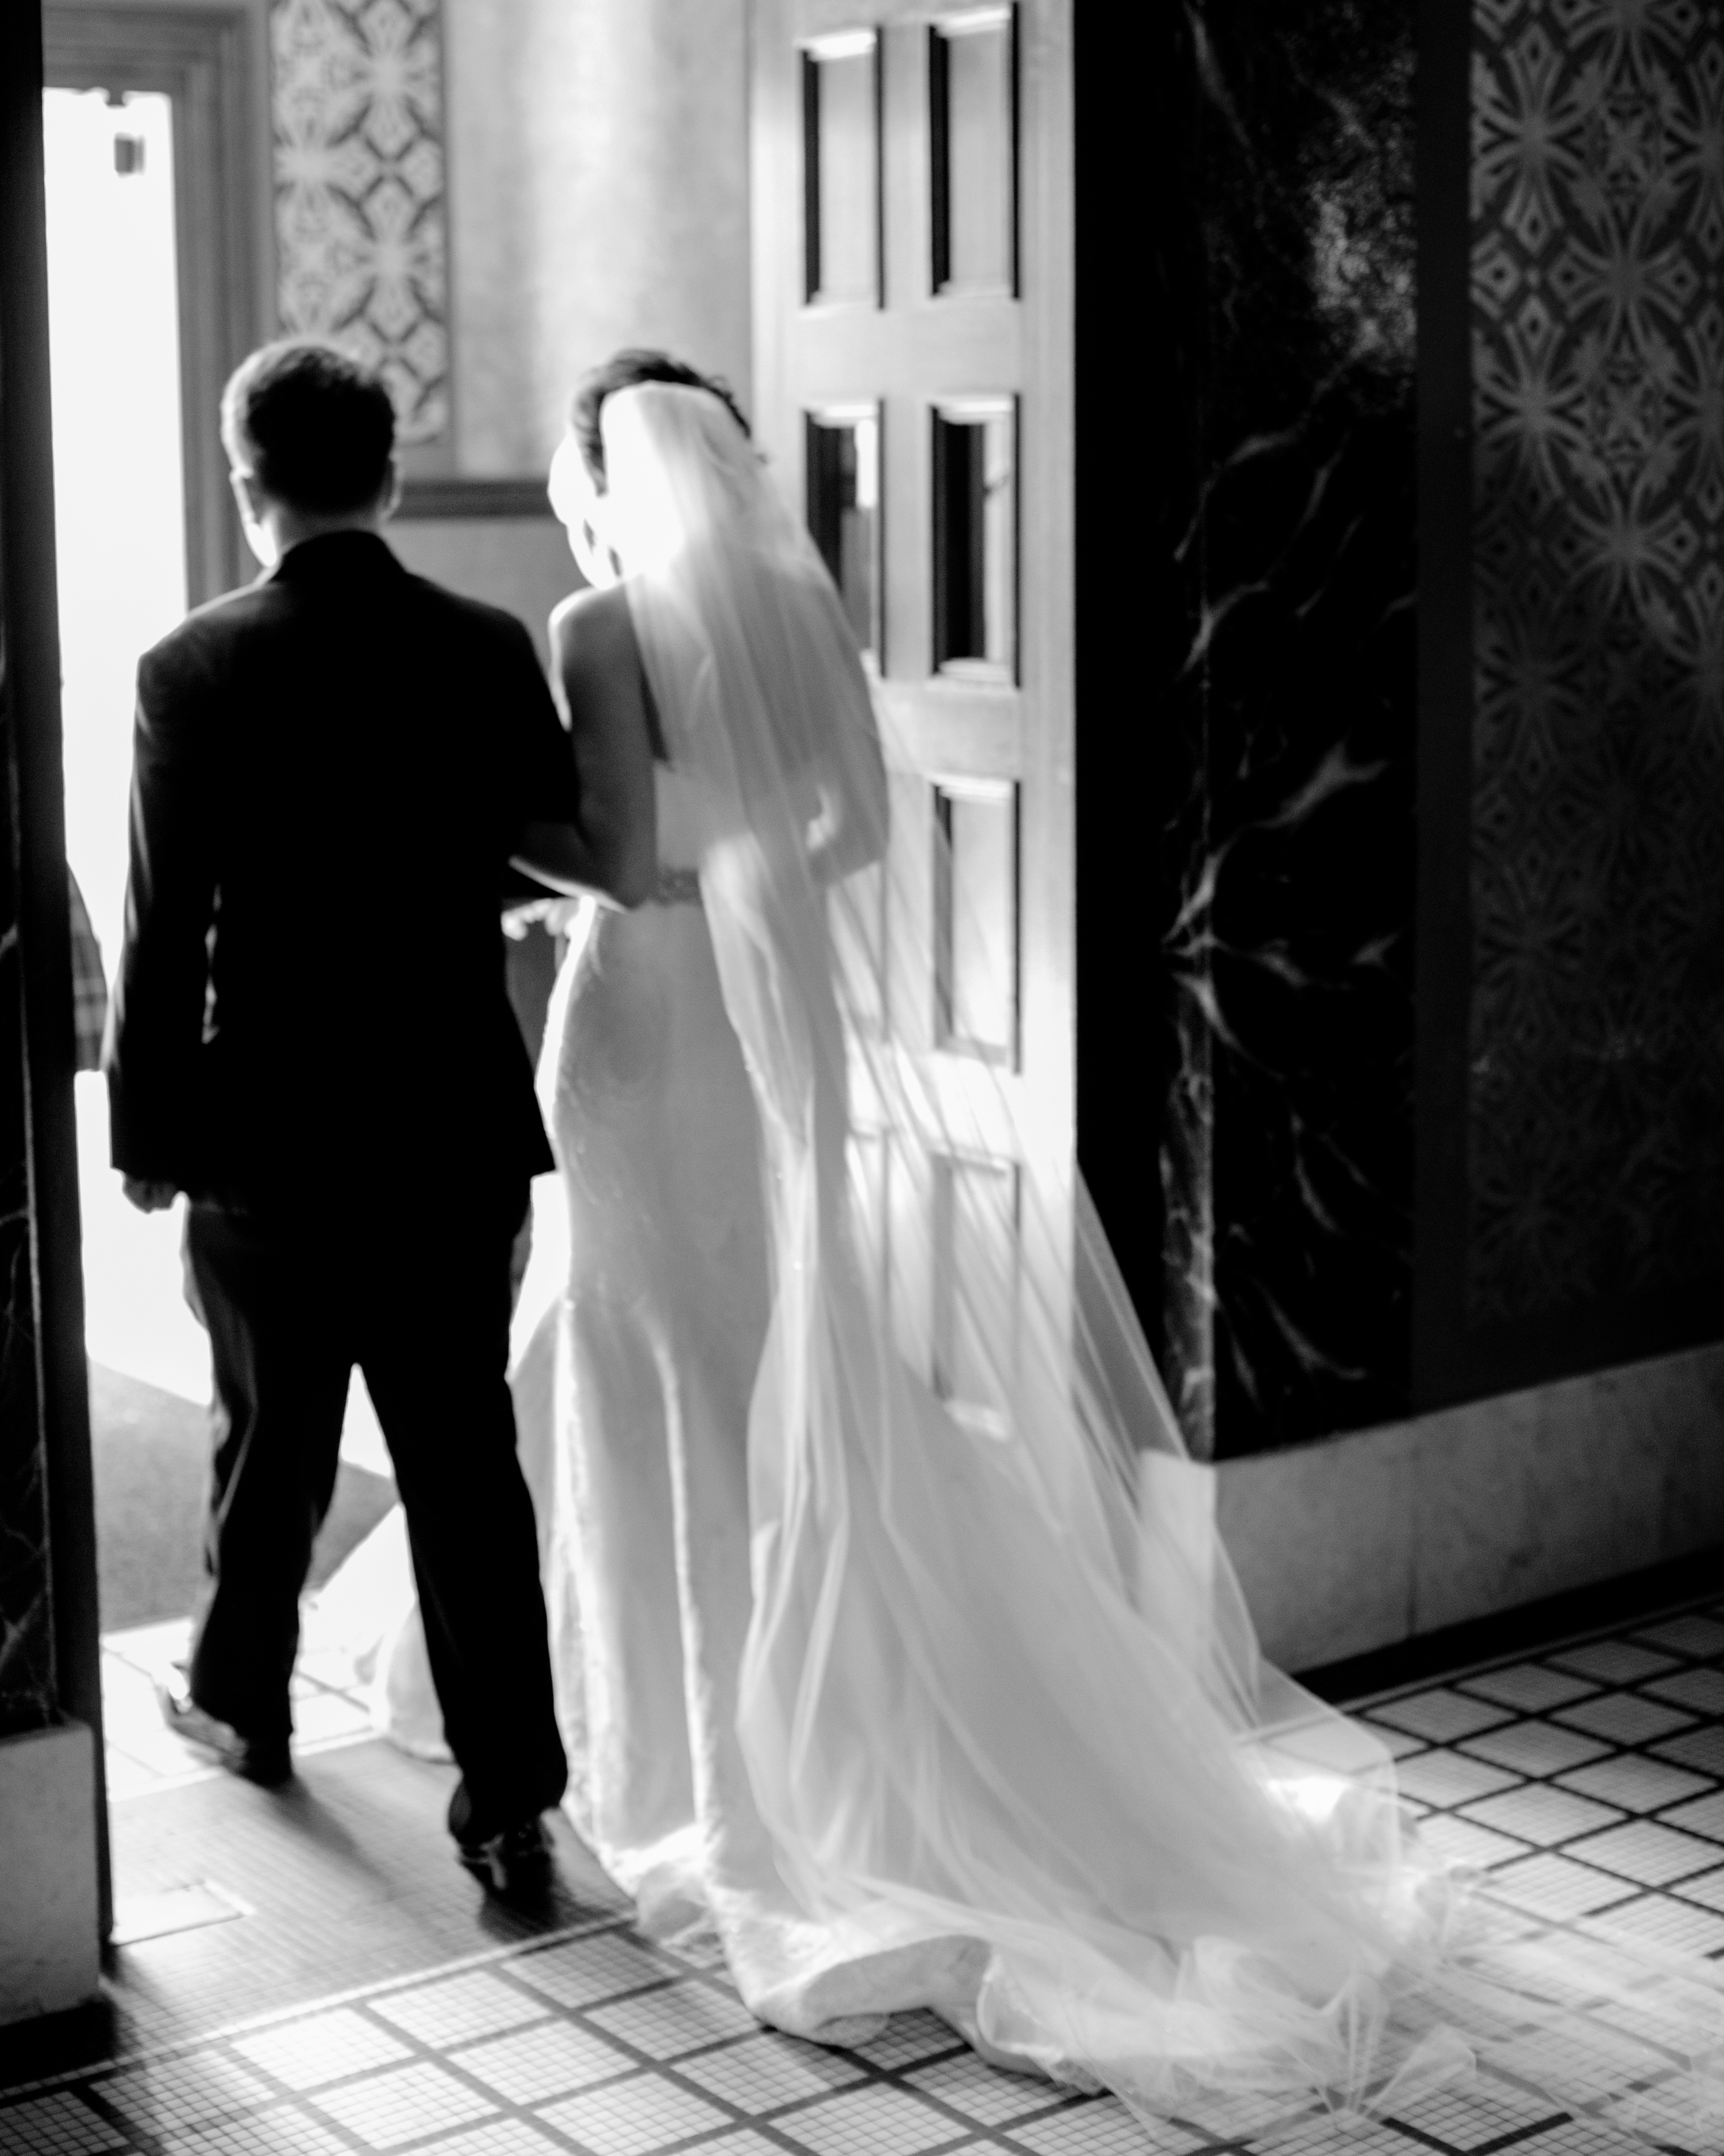 The Newlyweds' Exit